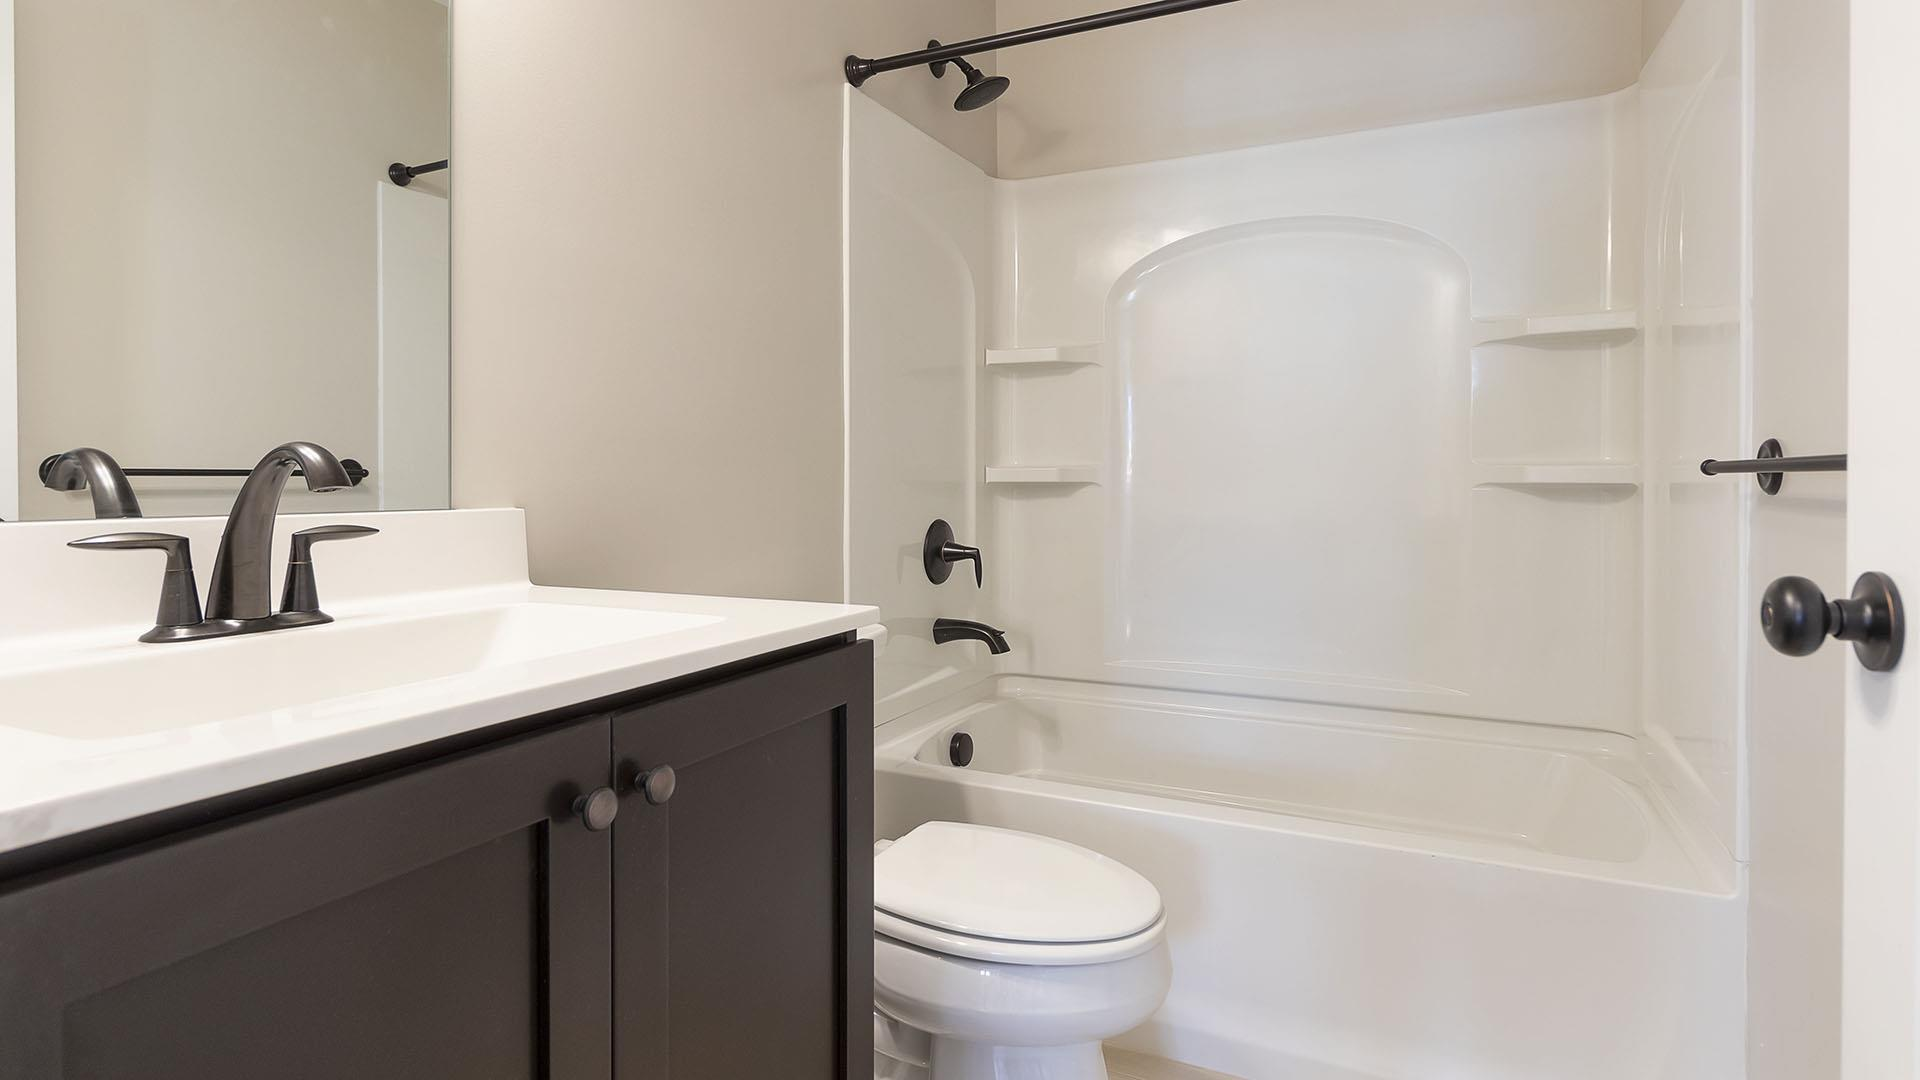 Bathroom featured in the Dartmouth By S & A Homes in State College, PA